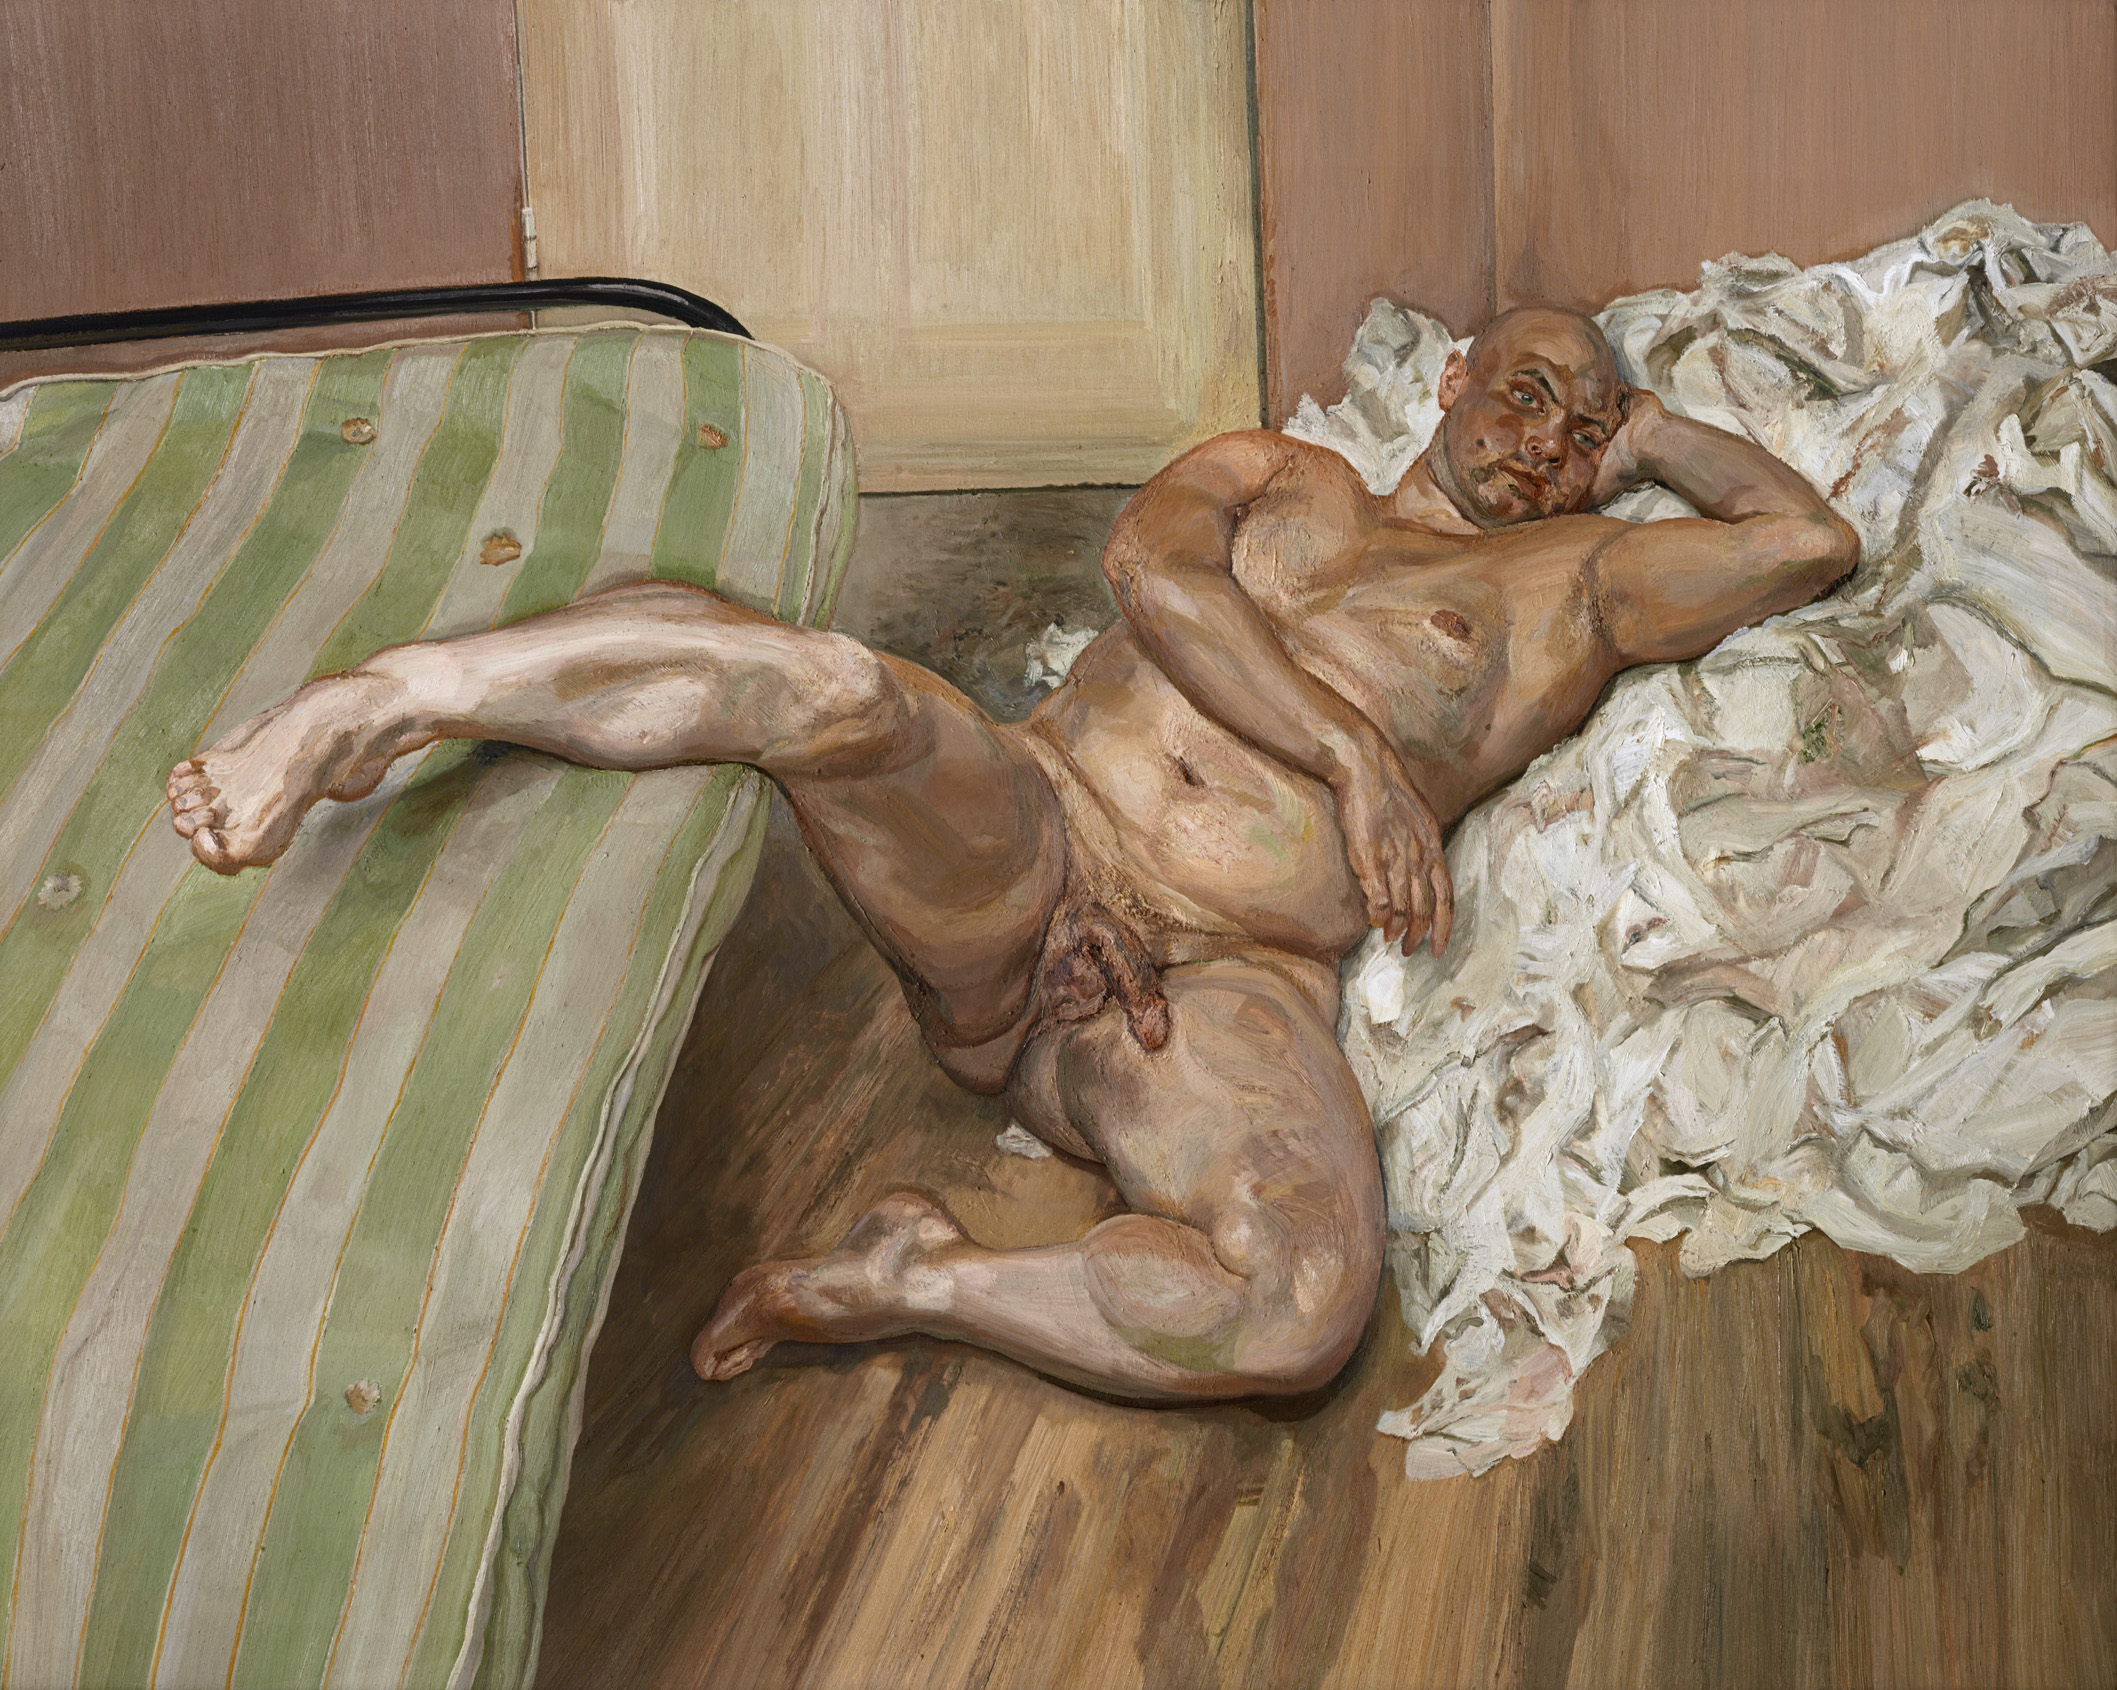 10 Lucian Freud Paintings That Will Make You Fear Flesh (NSFW ...: www.huffingtonpost.com/2013/10/19/lucian-freud_n_4099022.html